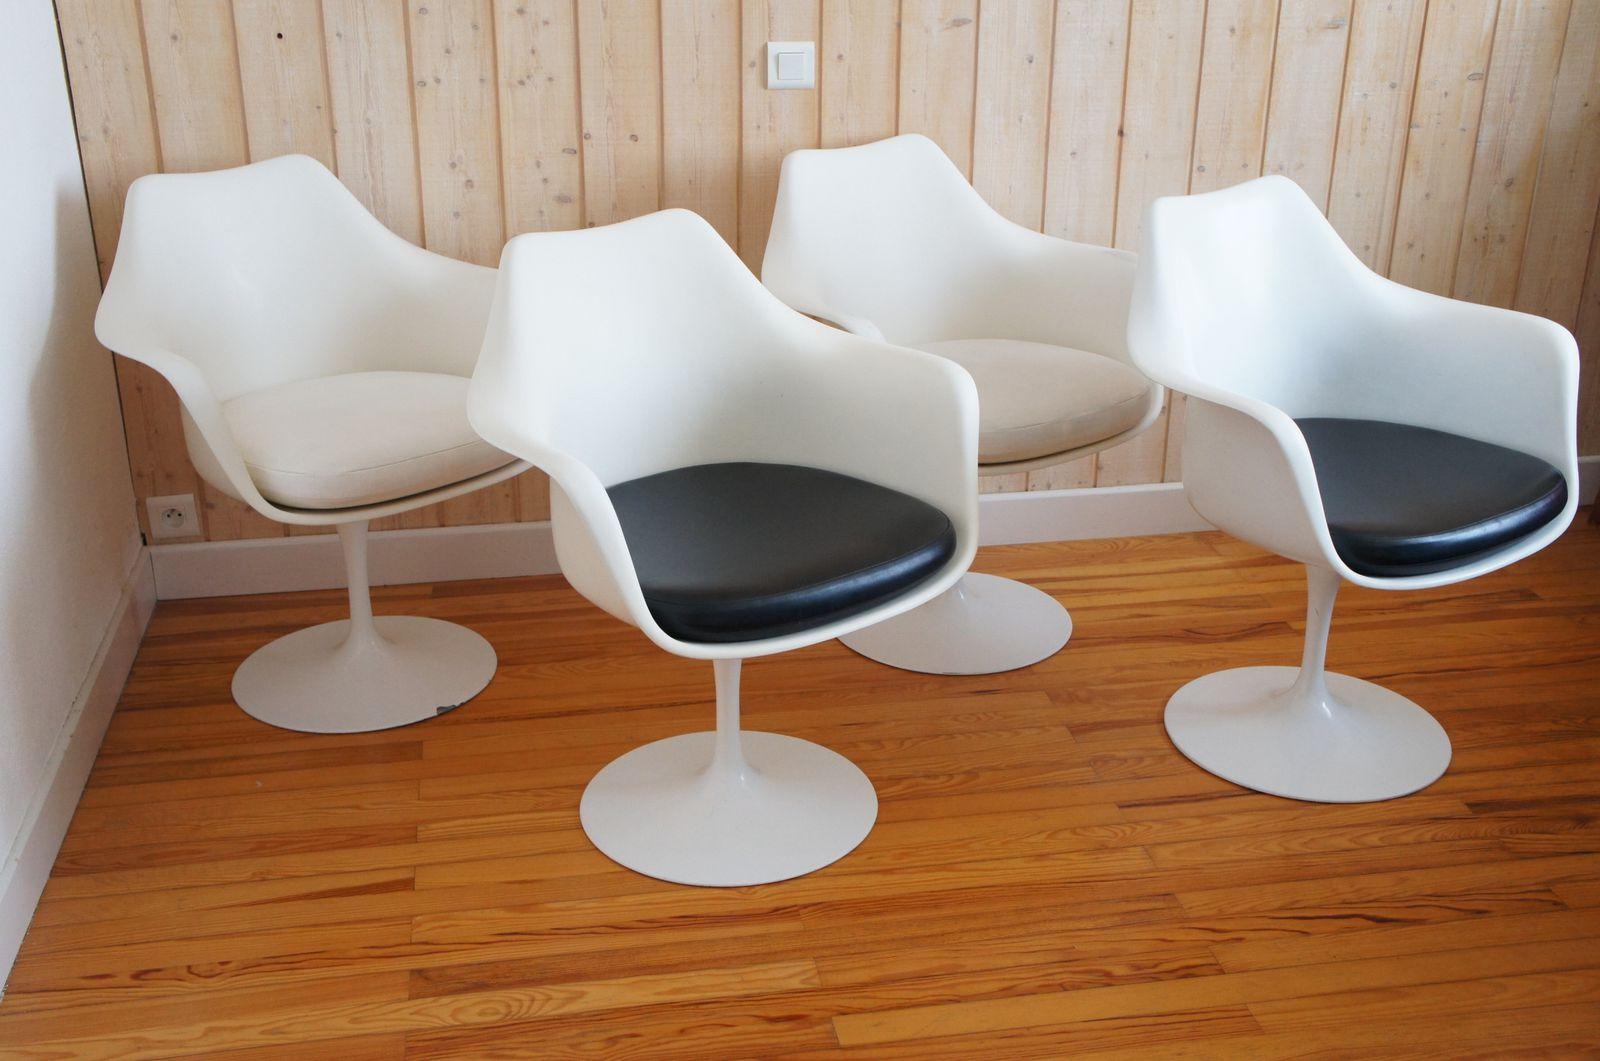 Fauteuils Tulipes Fauteuils Tulipes Eero Saarinen Knoll International Design